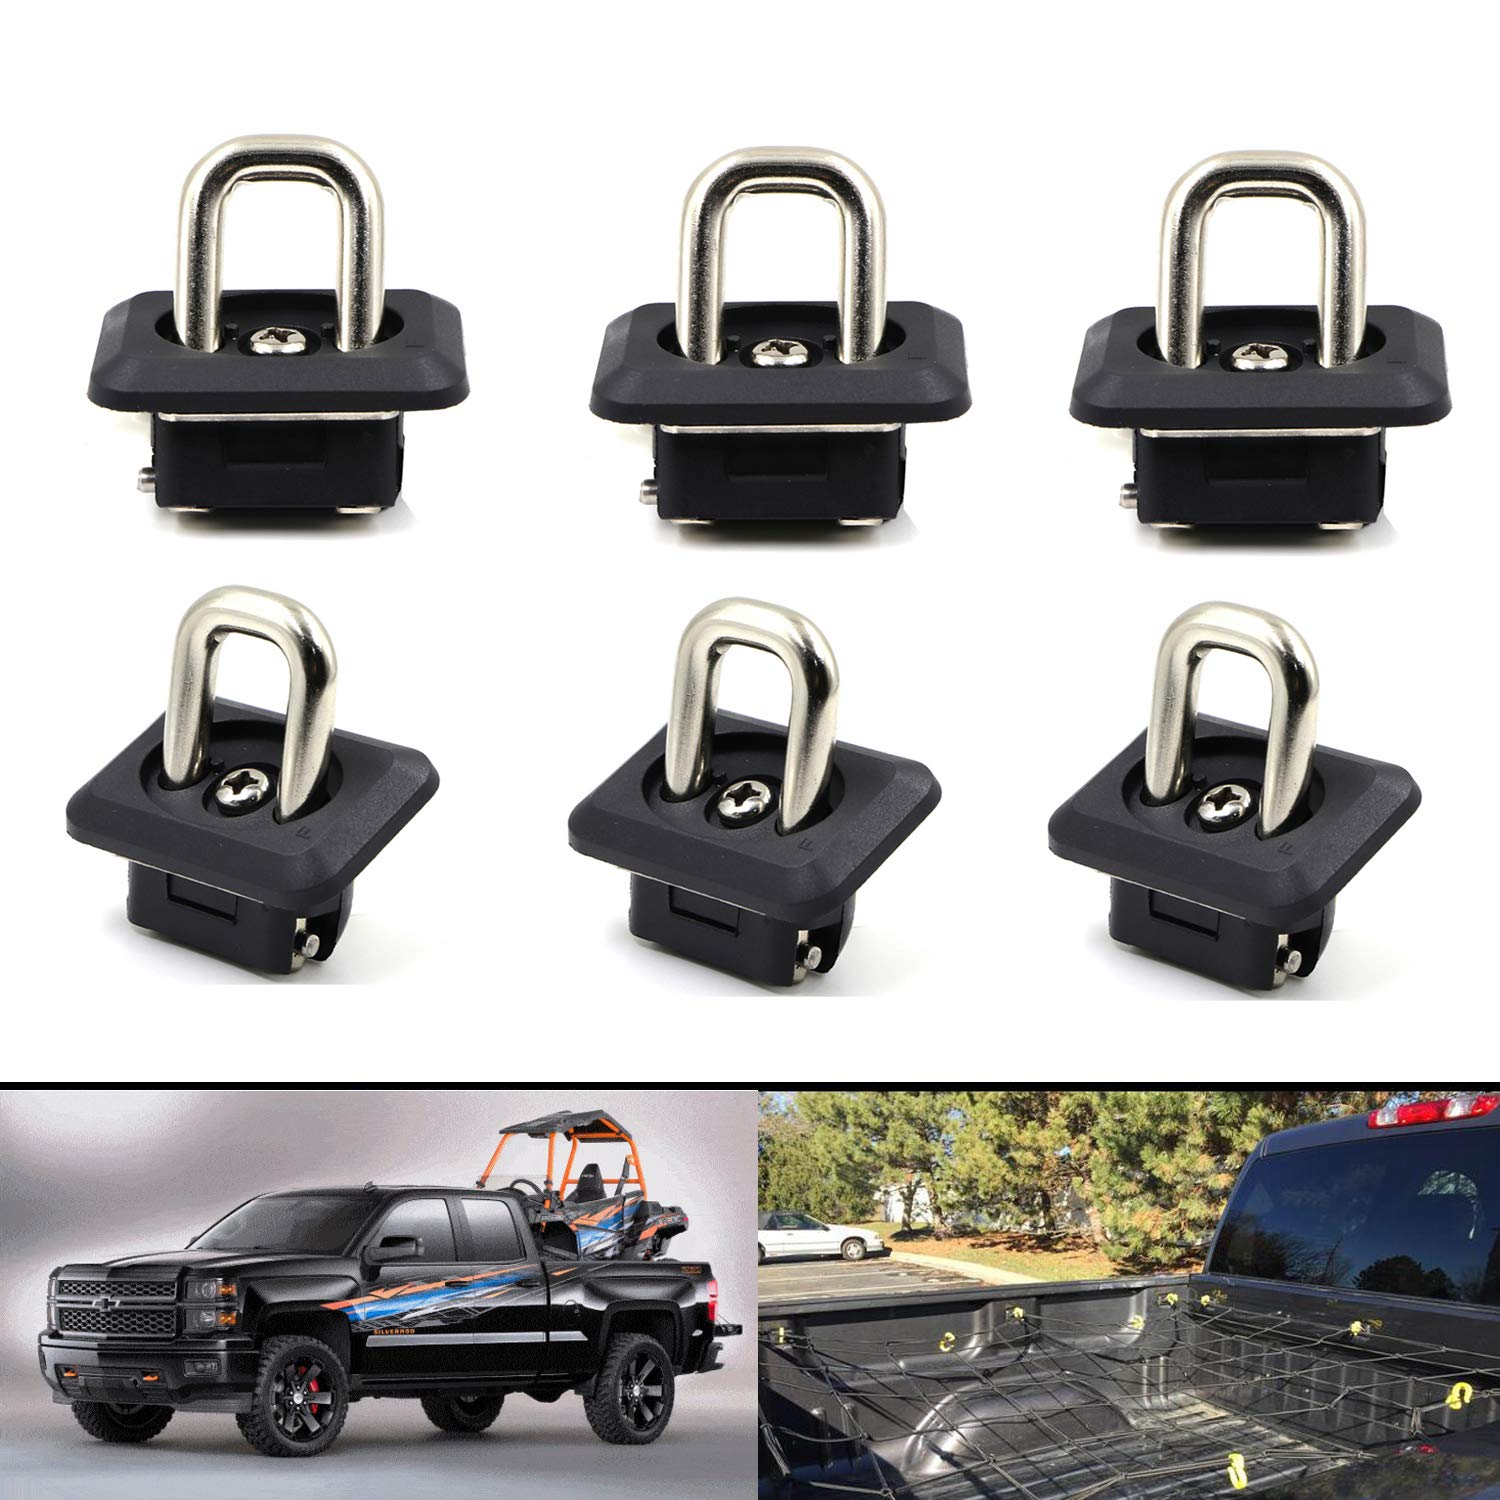 AEagle Tie Down Anchors Retractable Truck Bed Side Wall D Ring for 2015-2018 Chevrolet Colorado /& GMC Canyon 2007-2018 Chevrolet Silverado 1500 2500HD 3500HD /& GMC Sierra 1500 2500HD 3500HD 6 Pcs